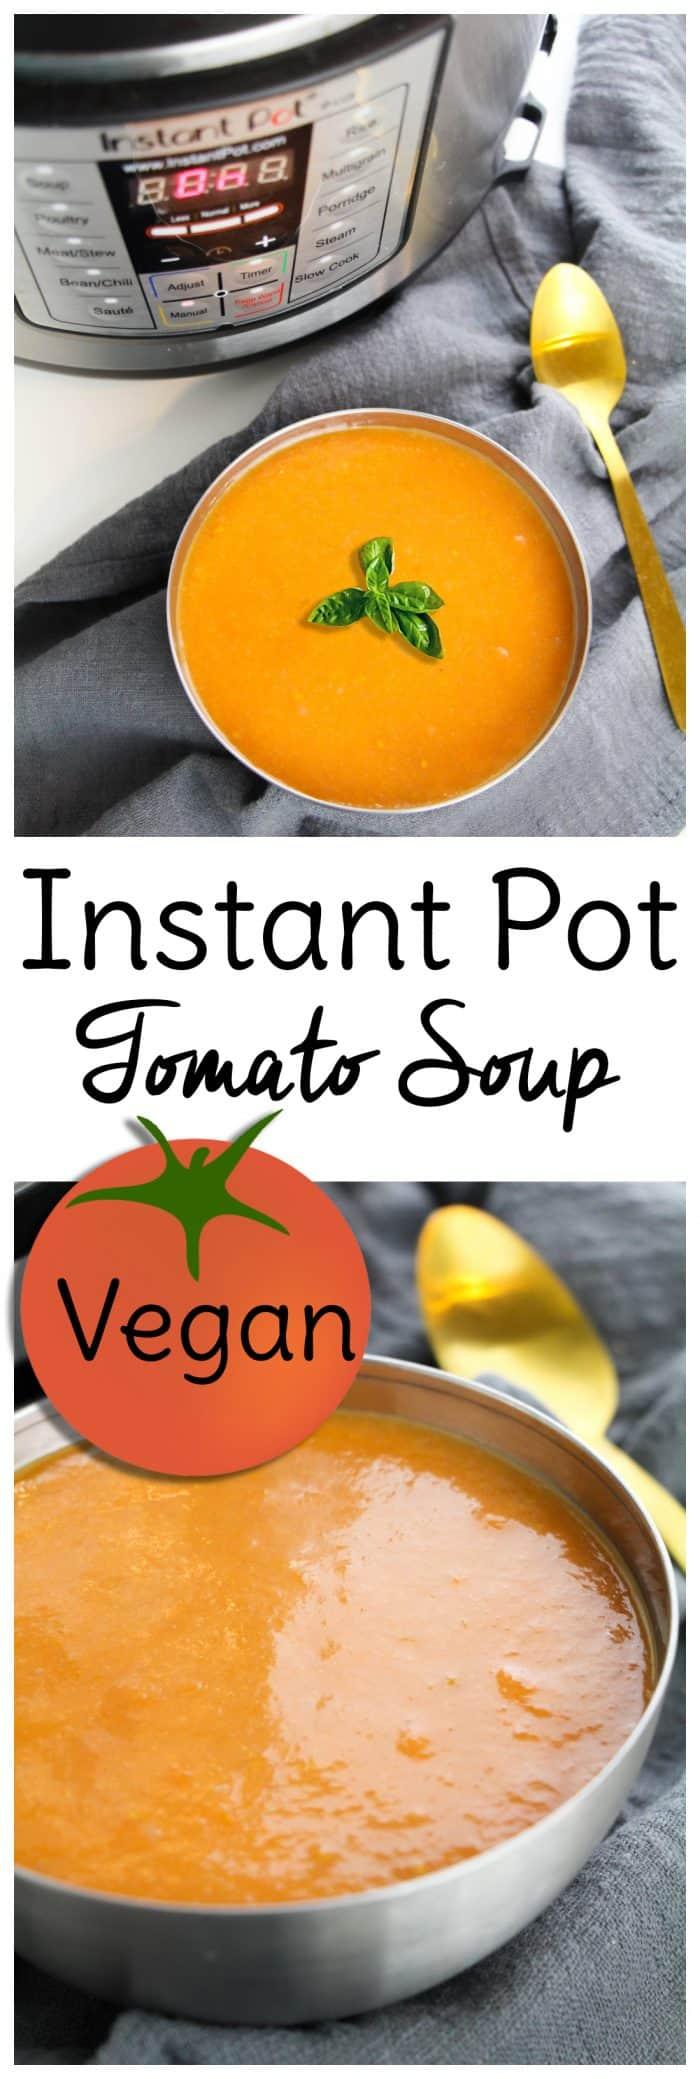 Vegan Instant Pot Tomato Soup: This vegan Instant Pot soup recipe will give you a dinner so delicious even carnivores will love it! #veganinstantpot #instantpotsoup